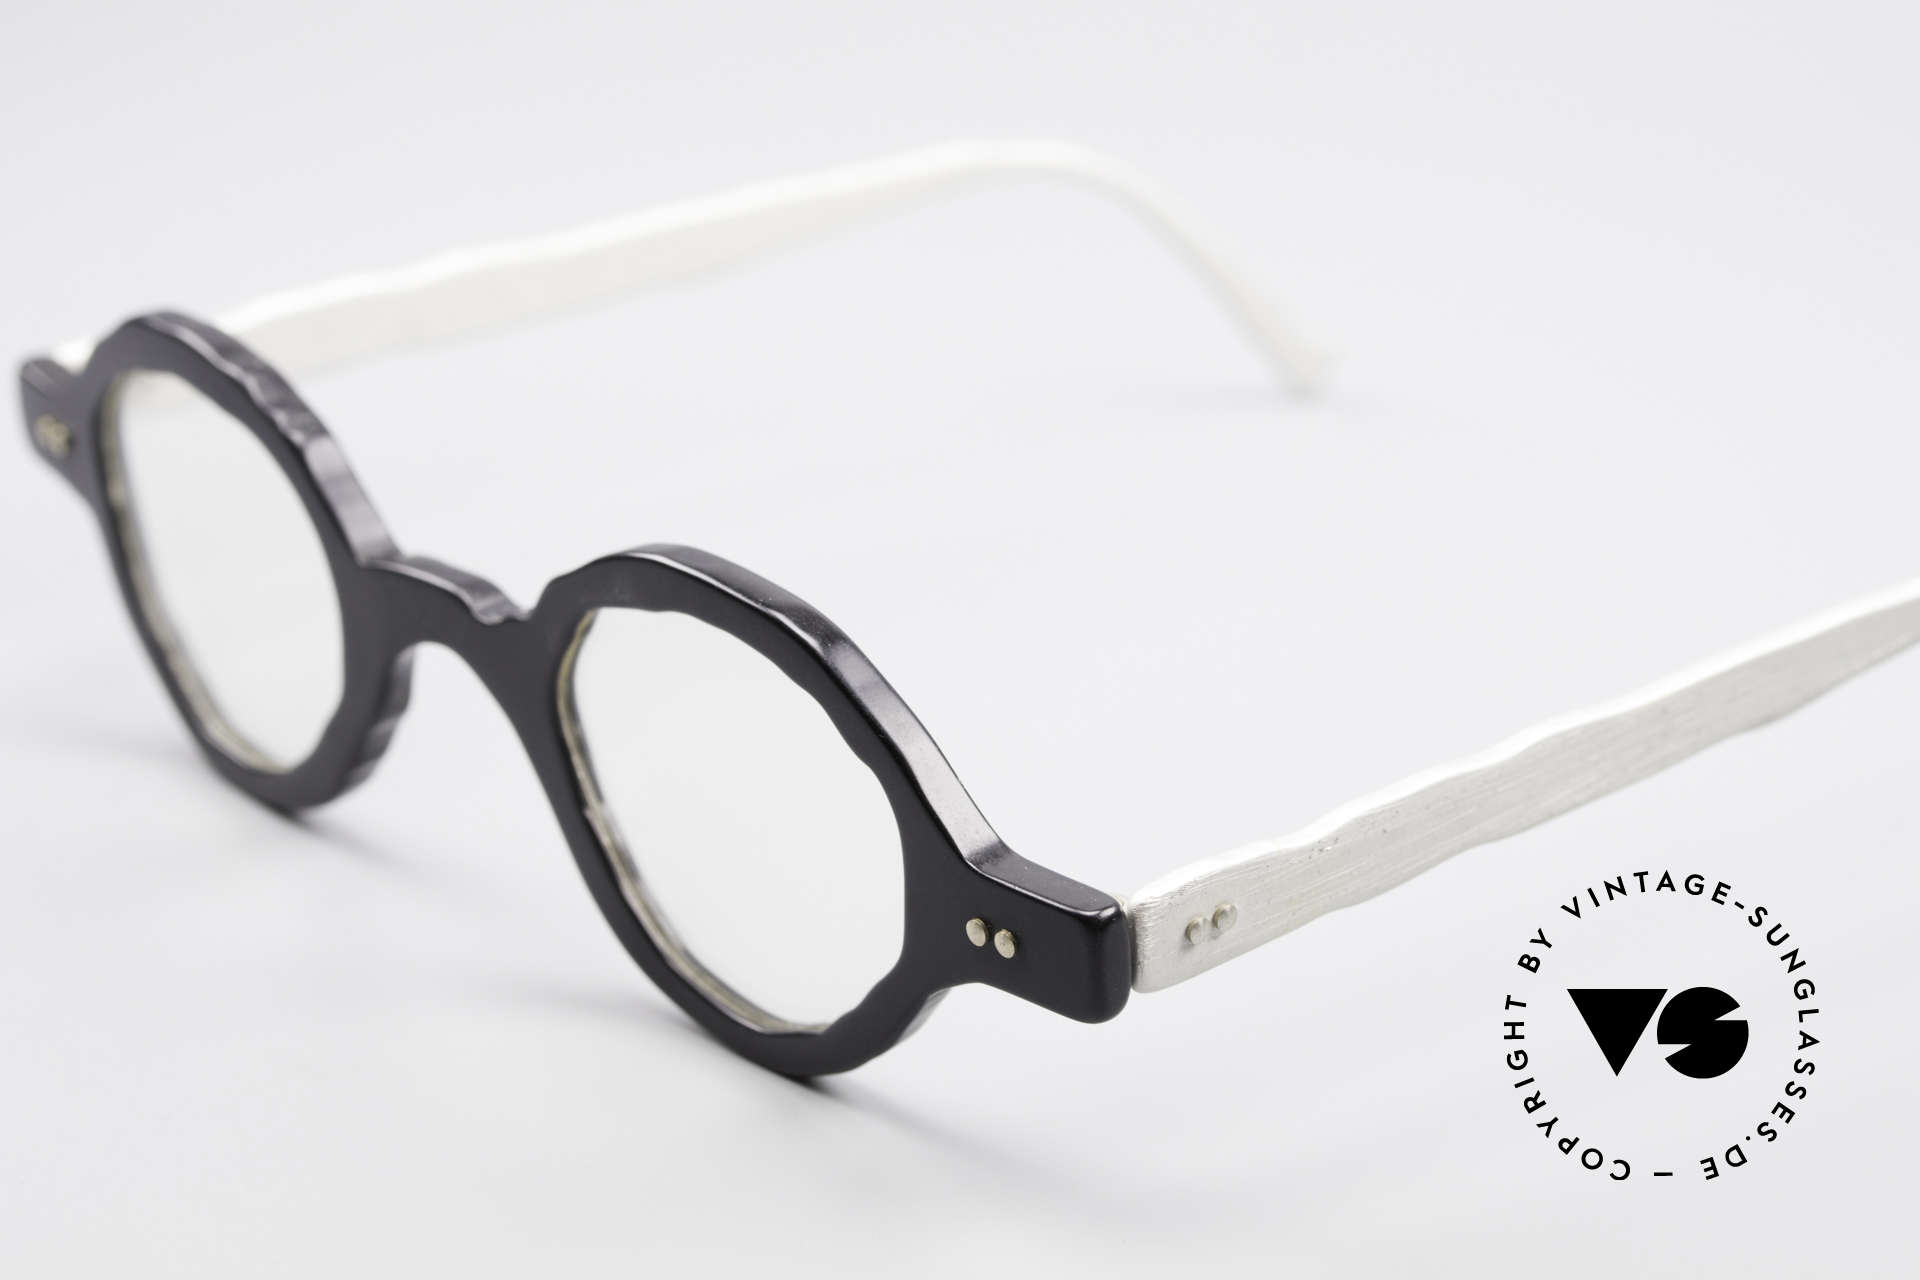 Theo Belgium Eye-Witness BD30 Avant-Garde Vintage Glasses, the fancy 'Eye-Witness' series was launched in May '95, Made for Men and Women